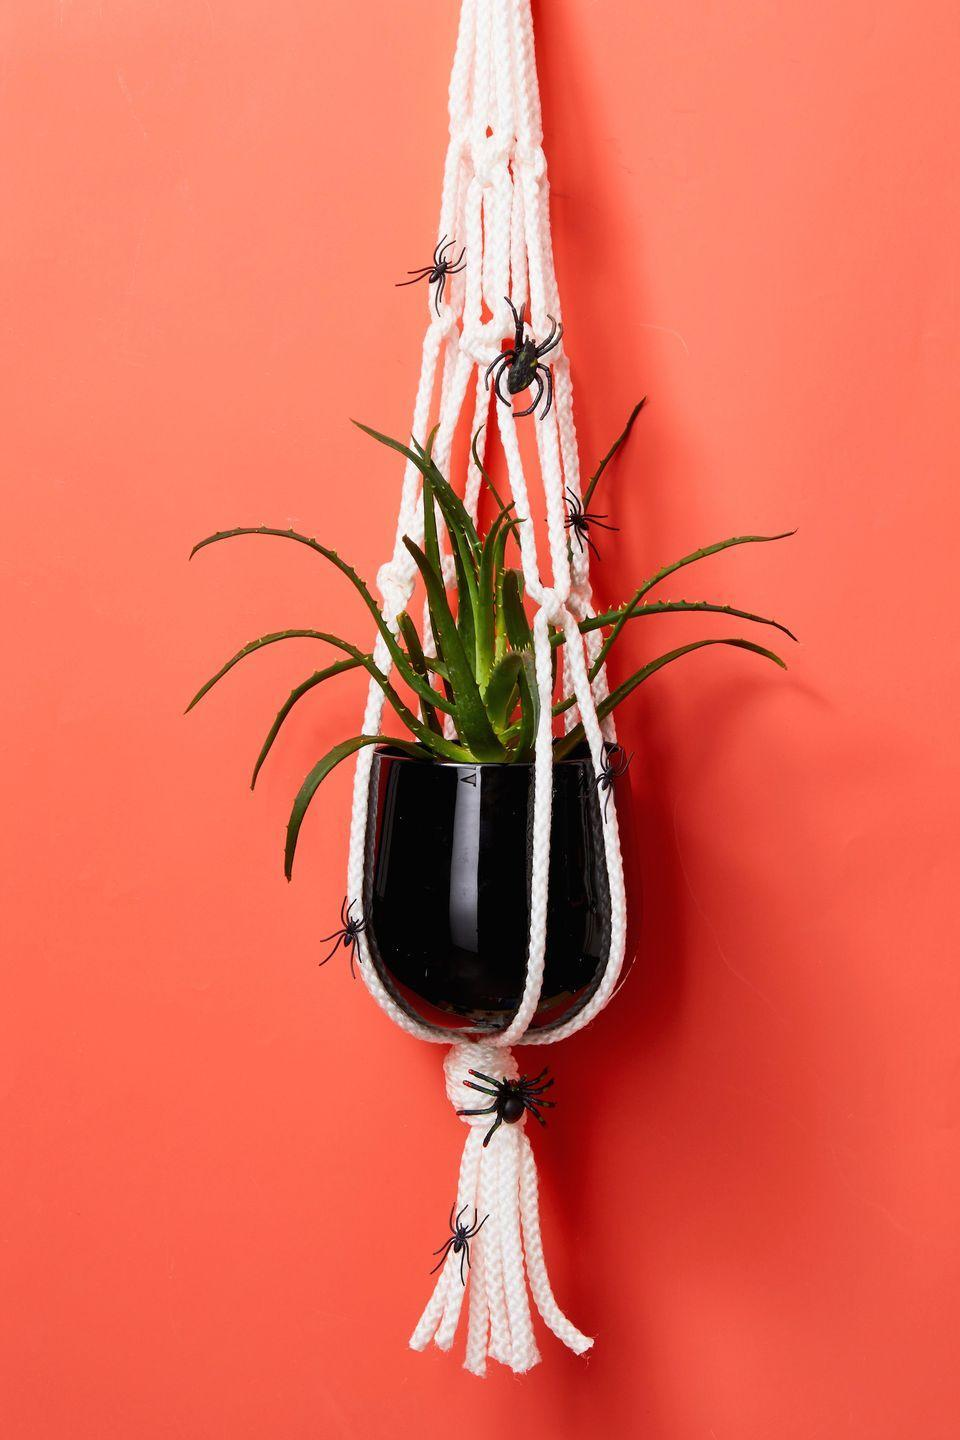 """<p>Ah, the easiest decor of all! Using hot glue or craft glue, attach faux spiders all over a macrame plant hanger. Pop in a spiky plant or succulent to complete the look. </p><p><a class=""""link rapid-noclick-resp"""" href=""""https://www.amazon.com/Mkono-Macrame-Outdoor-Hanging-Planter/dp/B01ARJJ56I/?tag=syn-yahoo-20&ascsubtag=%5Bartid%7C10055.g.421%5Bsrc%7Cyahoo-us"""" rel=""""nofollow noopener"""" target=""""_blank"""" data-ylk=""""slk:SHOP PLANT HANGERS"""">SHOP PLANT HANGERS</a></p>"""